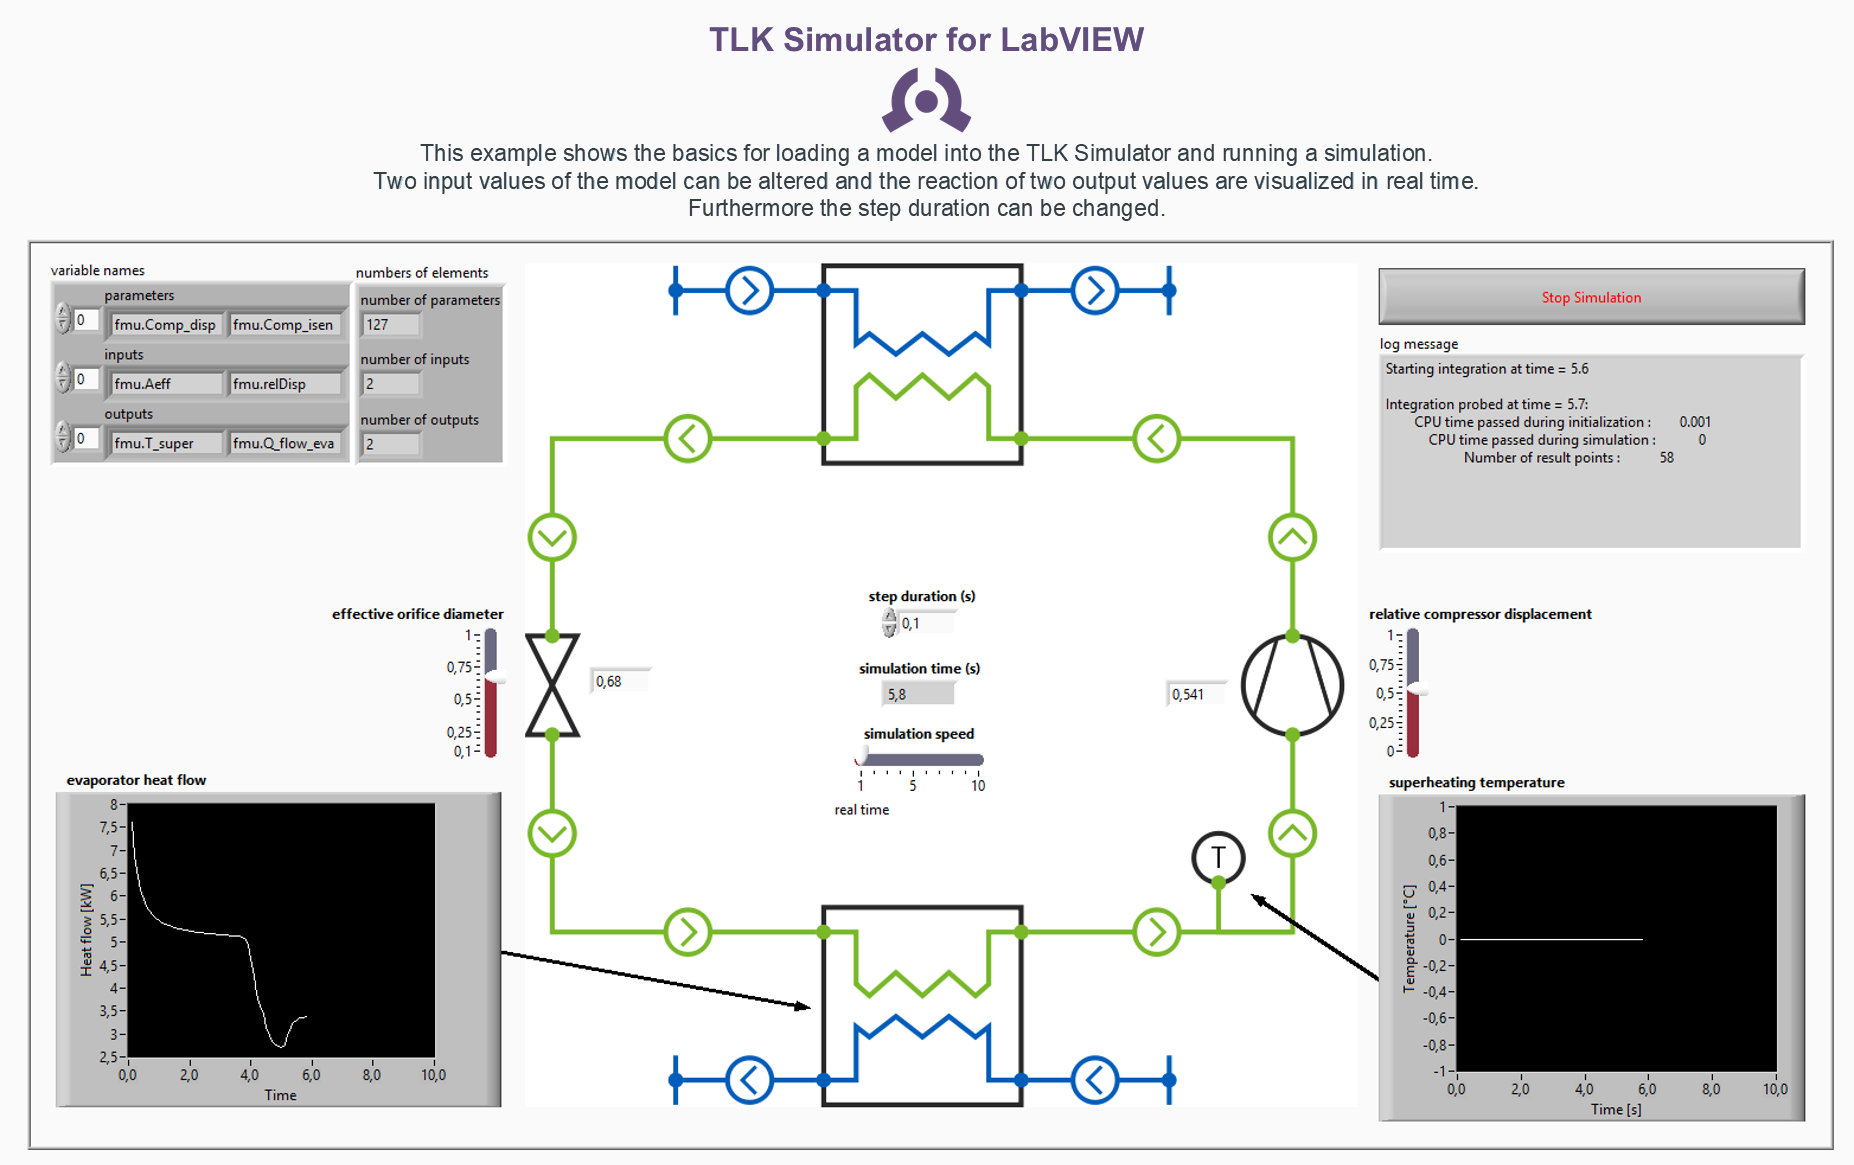 TLK-Simulator for LabVIEW